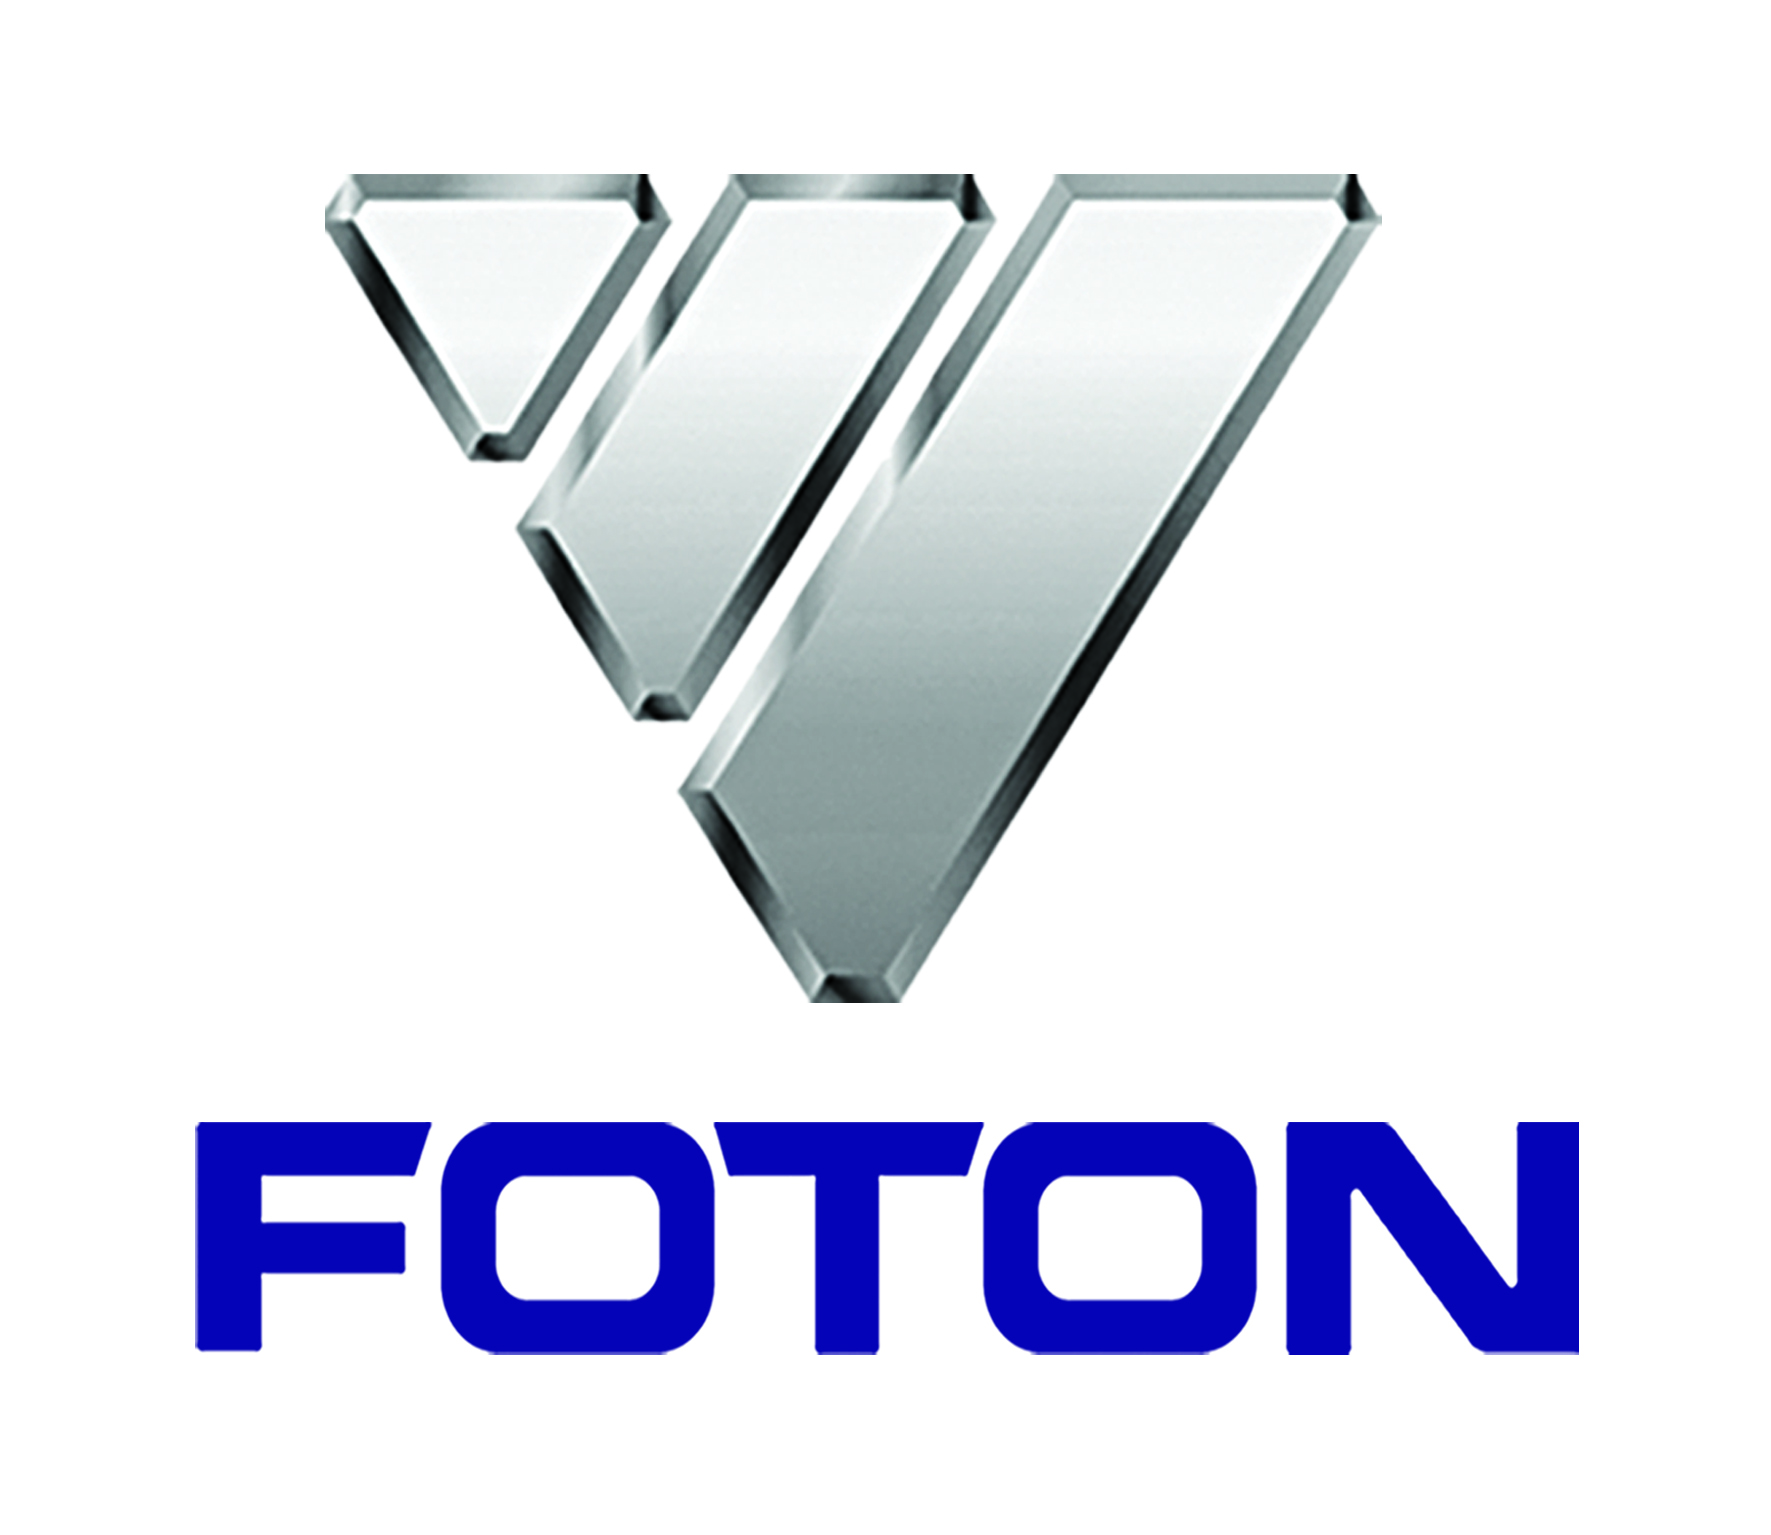 Foton Logo Wallpaper